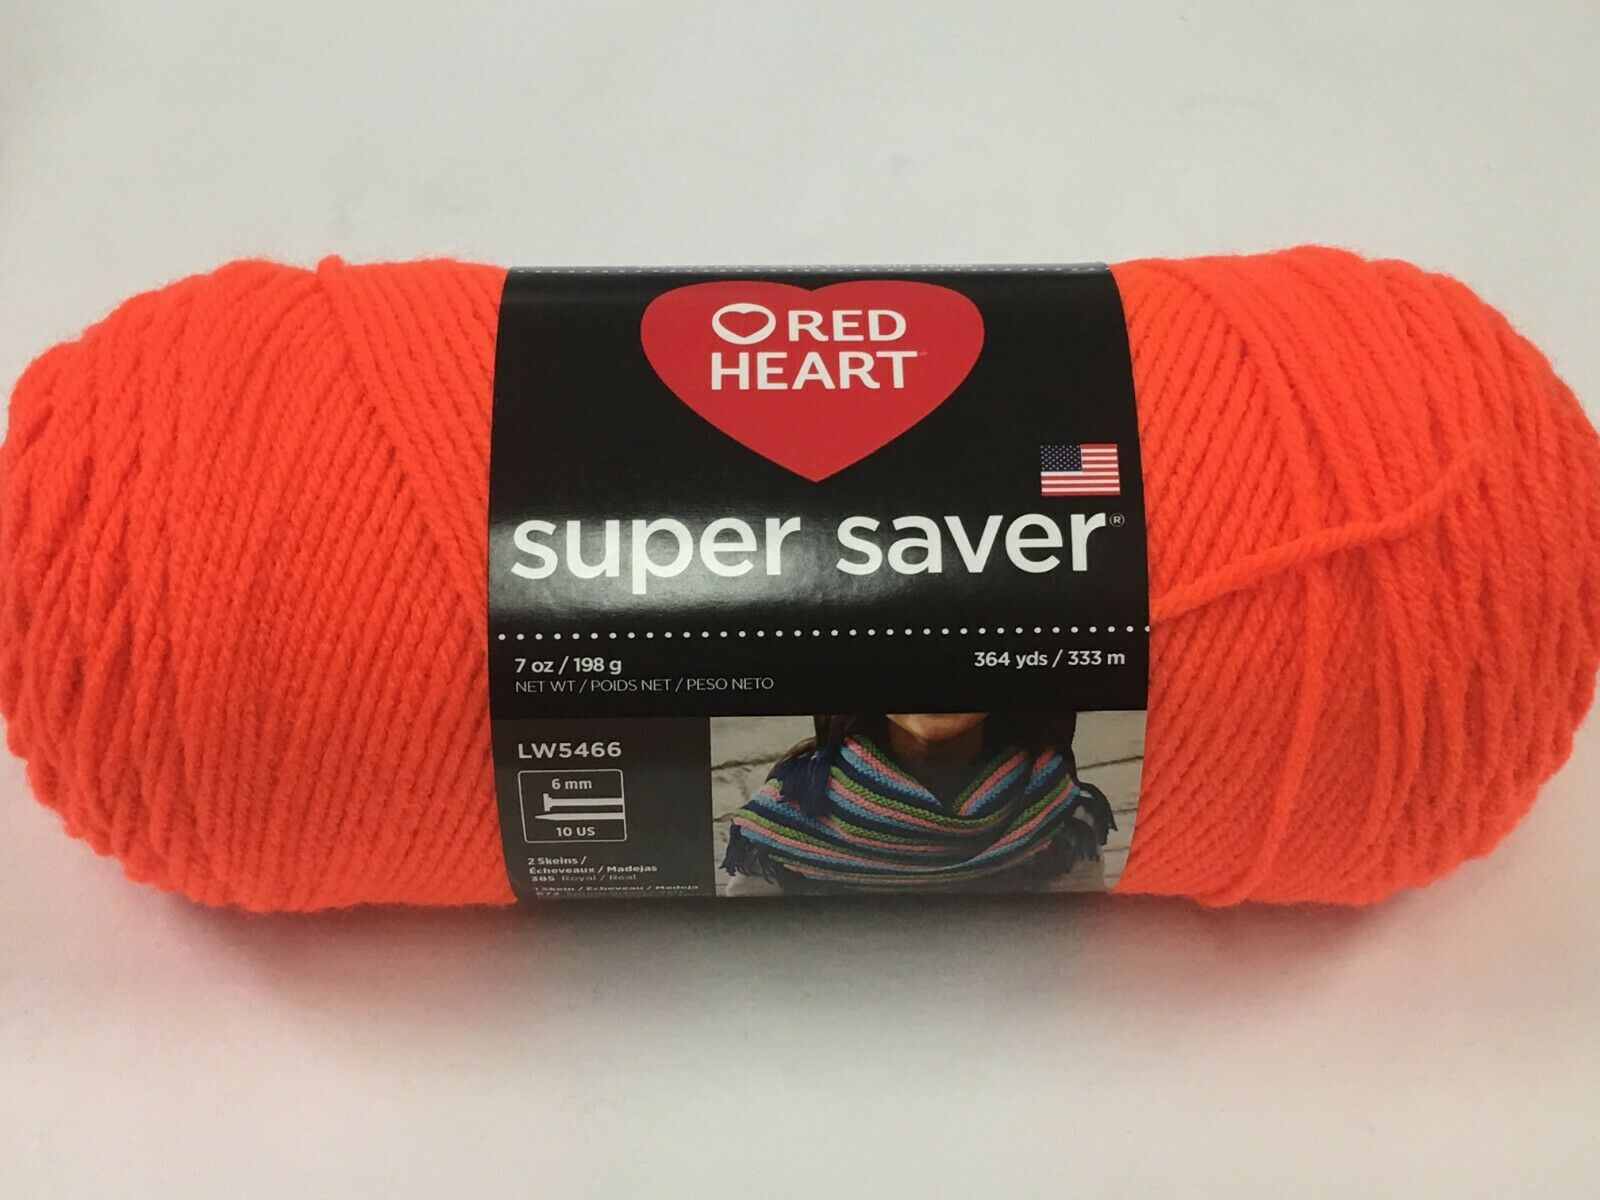 Red Heart Super Saver YARN • ROYAL BLUE • 7 OZ198 g364 YDS333m E300